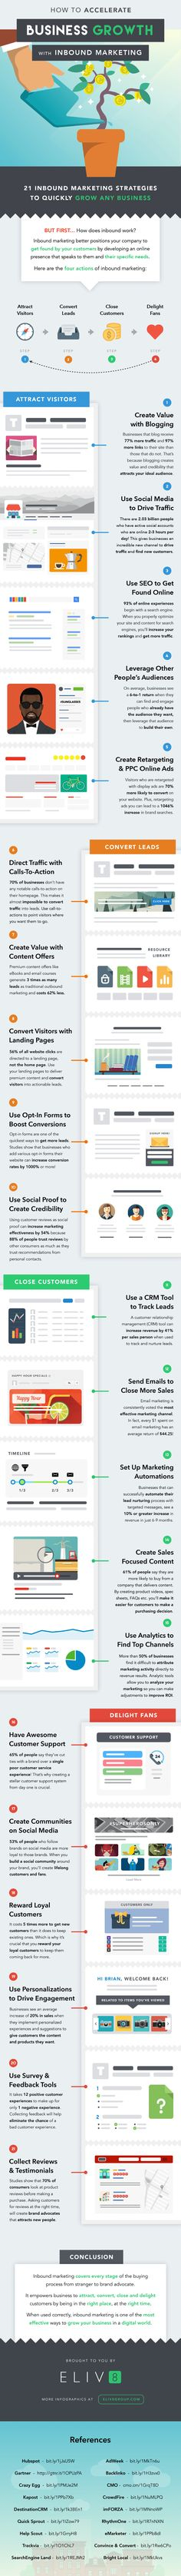 21 Powerful Business Growth Strategies (Infographic)